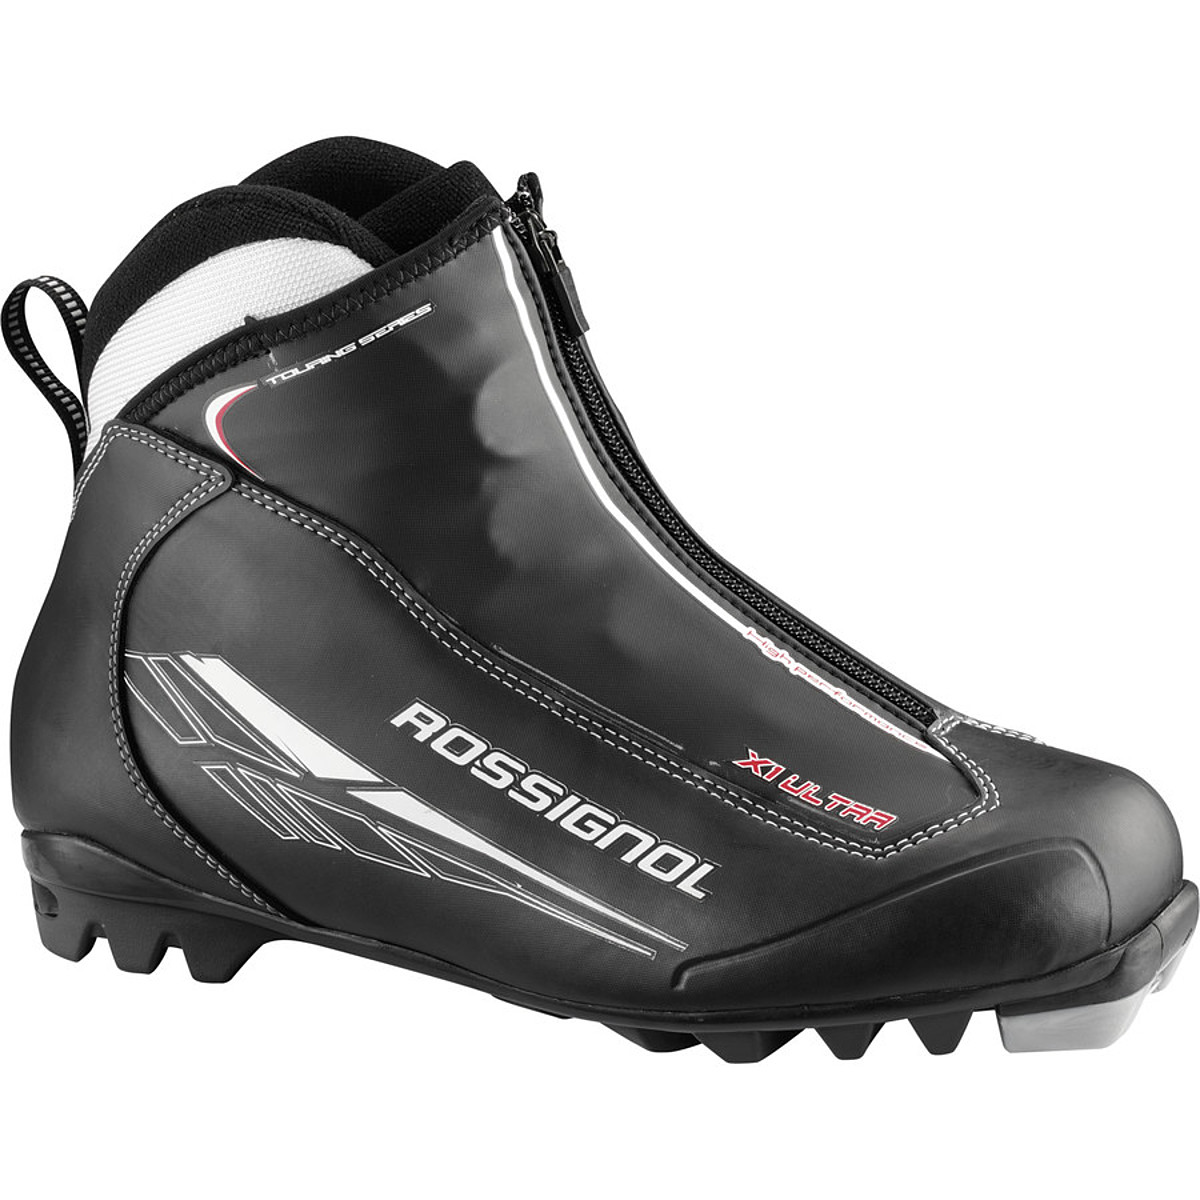 Rossignol X1 Ultra Cross-Country